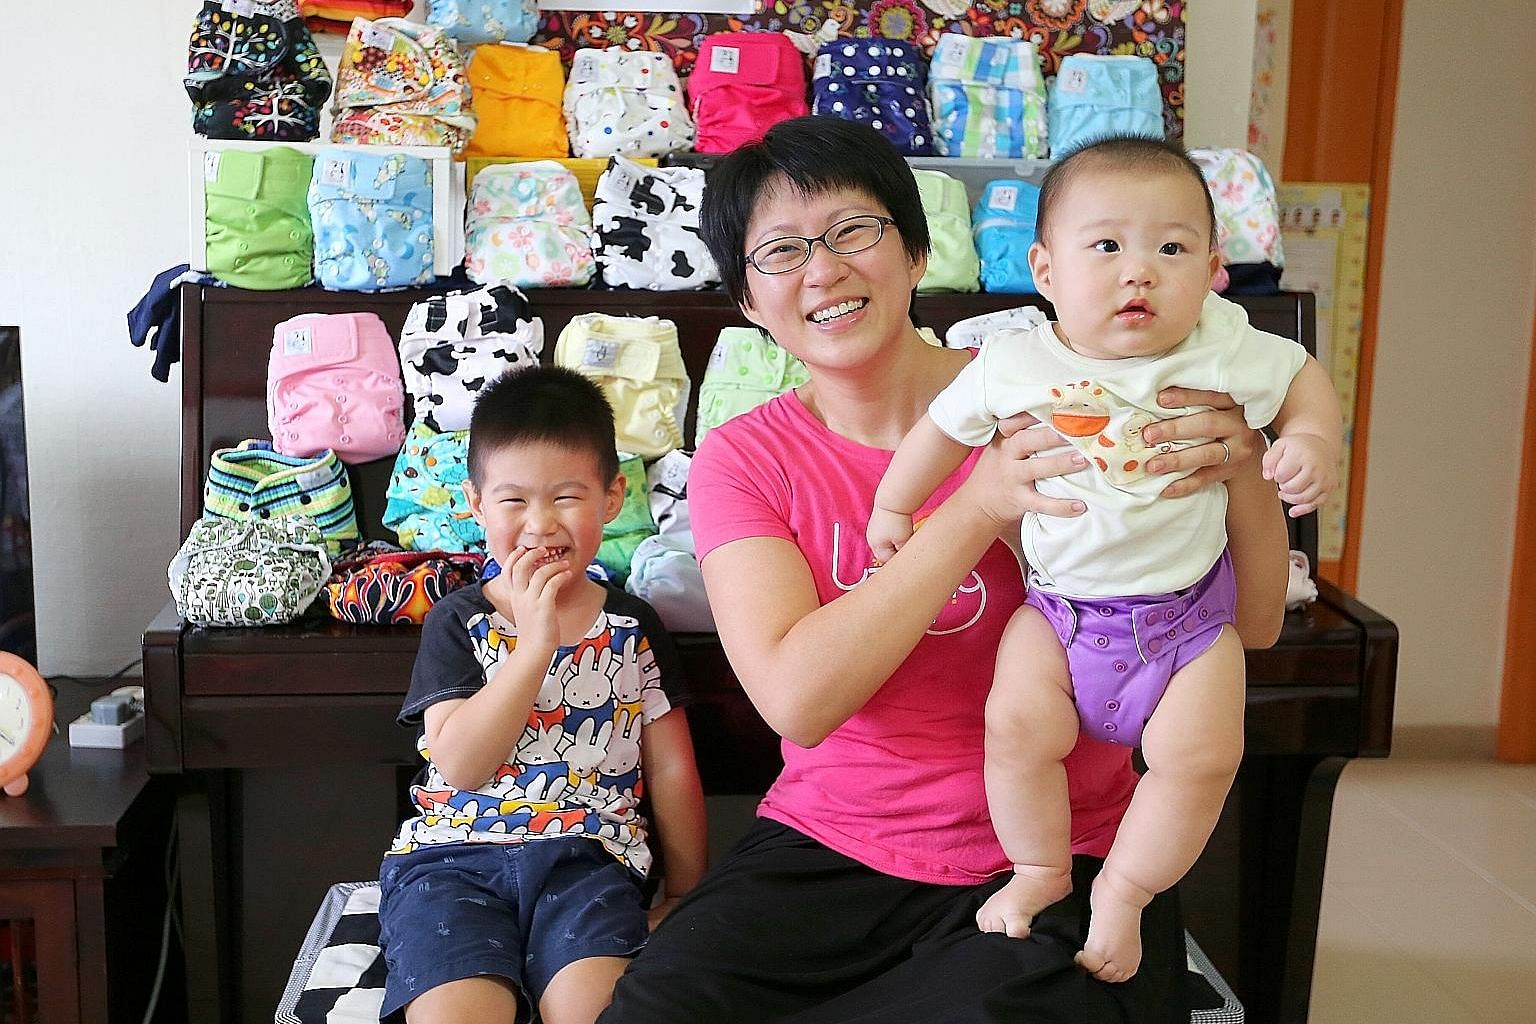 For Ms Irma Niza Jamal and her husband, Mr Mohammad Khirruddin Ismail, cost savings and attractive designs are main draws for using cloth diapers on daughter Eesha Naira.